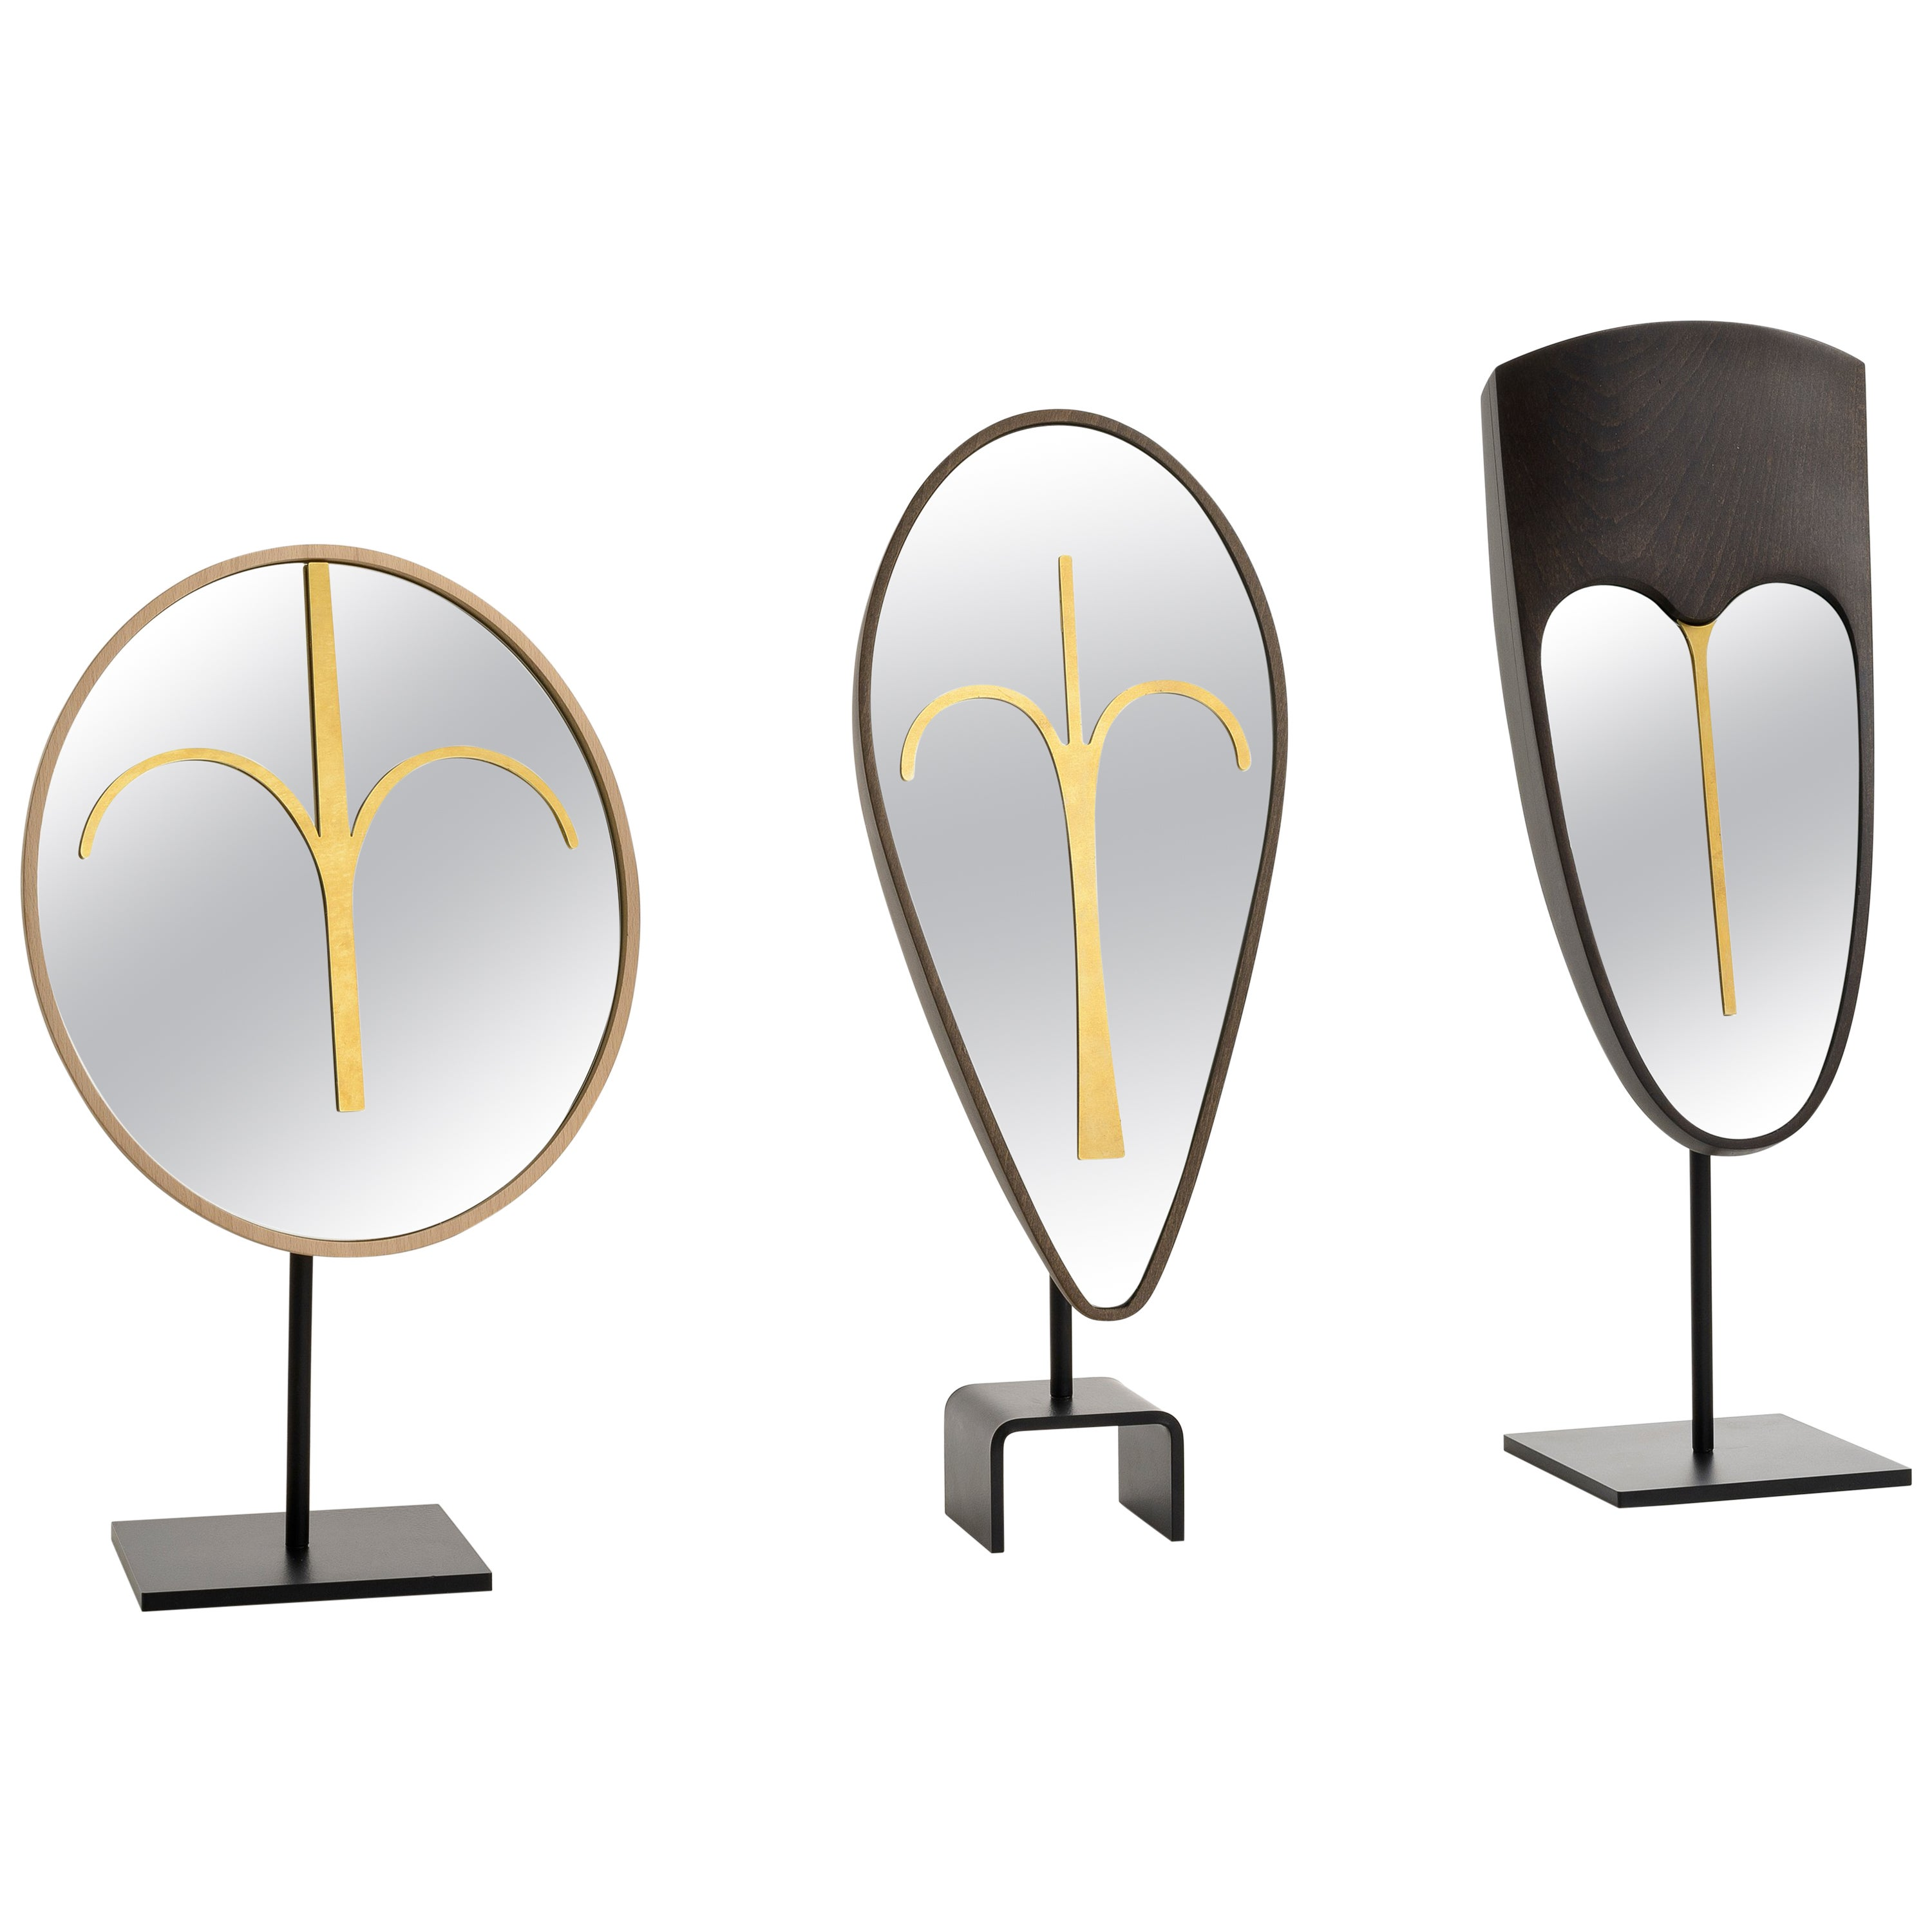 Three Wise Mirrors, Minimalist Ethnic Sculptures Inspired By African Masks